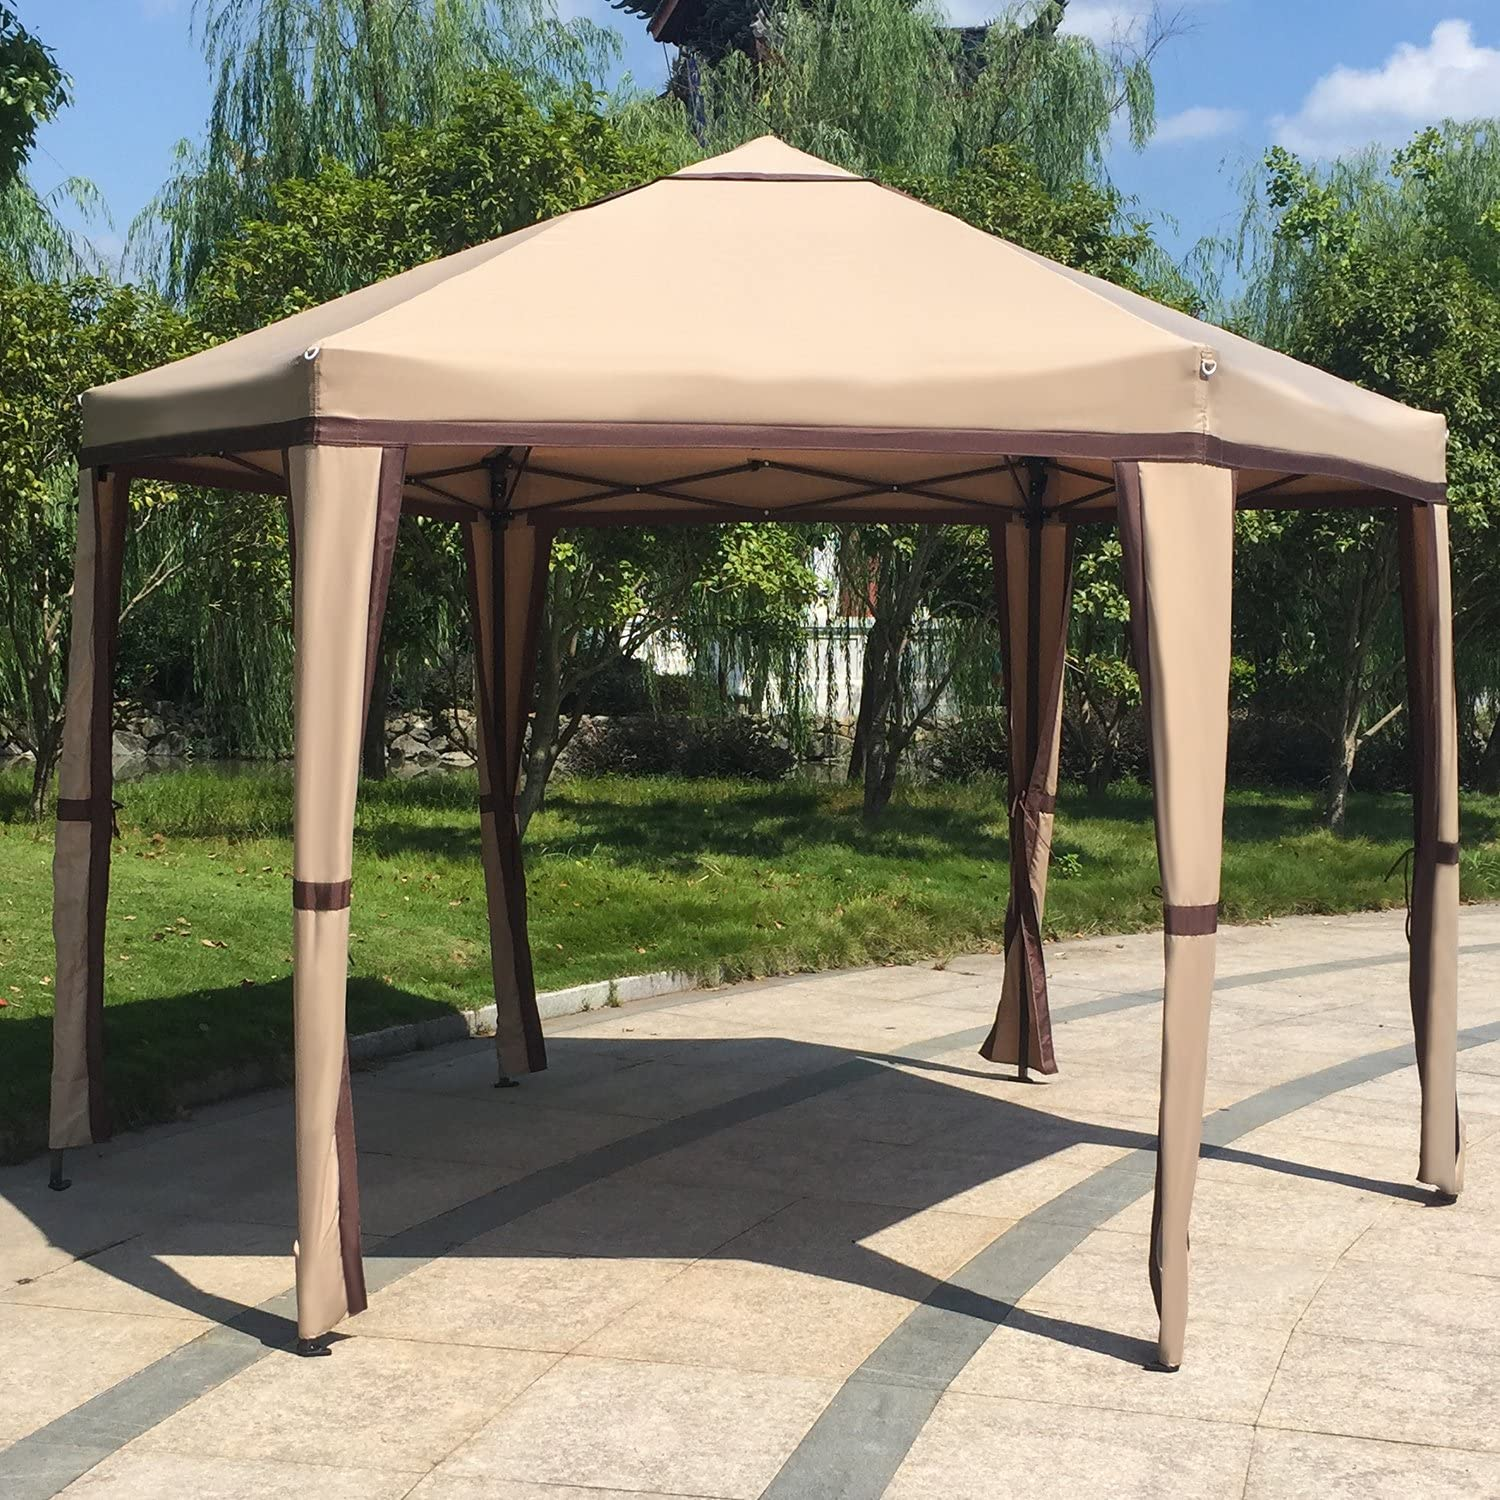 Kinbor 12u0027x 8u0027 Outdoor Patio Iron Gazebo Canopy Garden Backyard Tent  sc 1 st  Amazon.com : cheap garden canopy - memphite.com